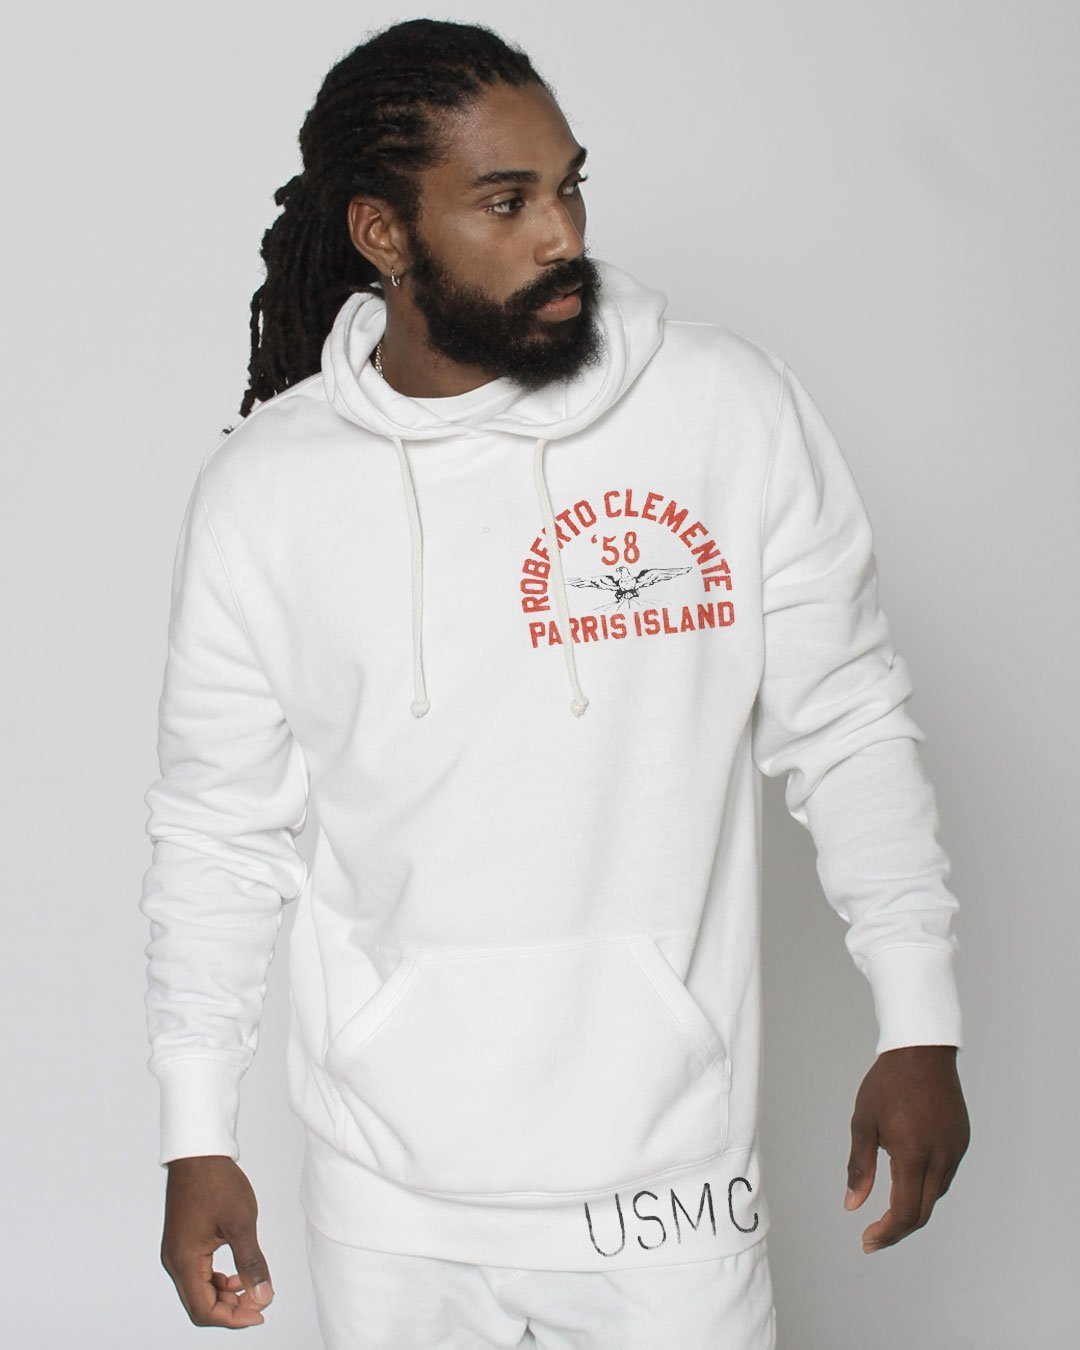 Roberto Clemente Parris Island Pullover Hoody - Roots of Inc dba Roots of Fight